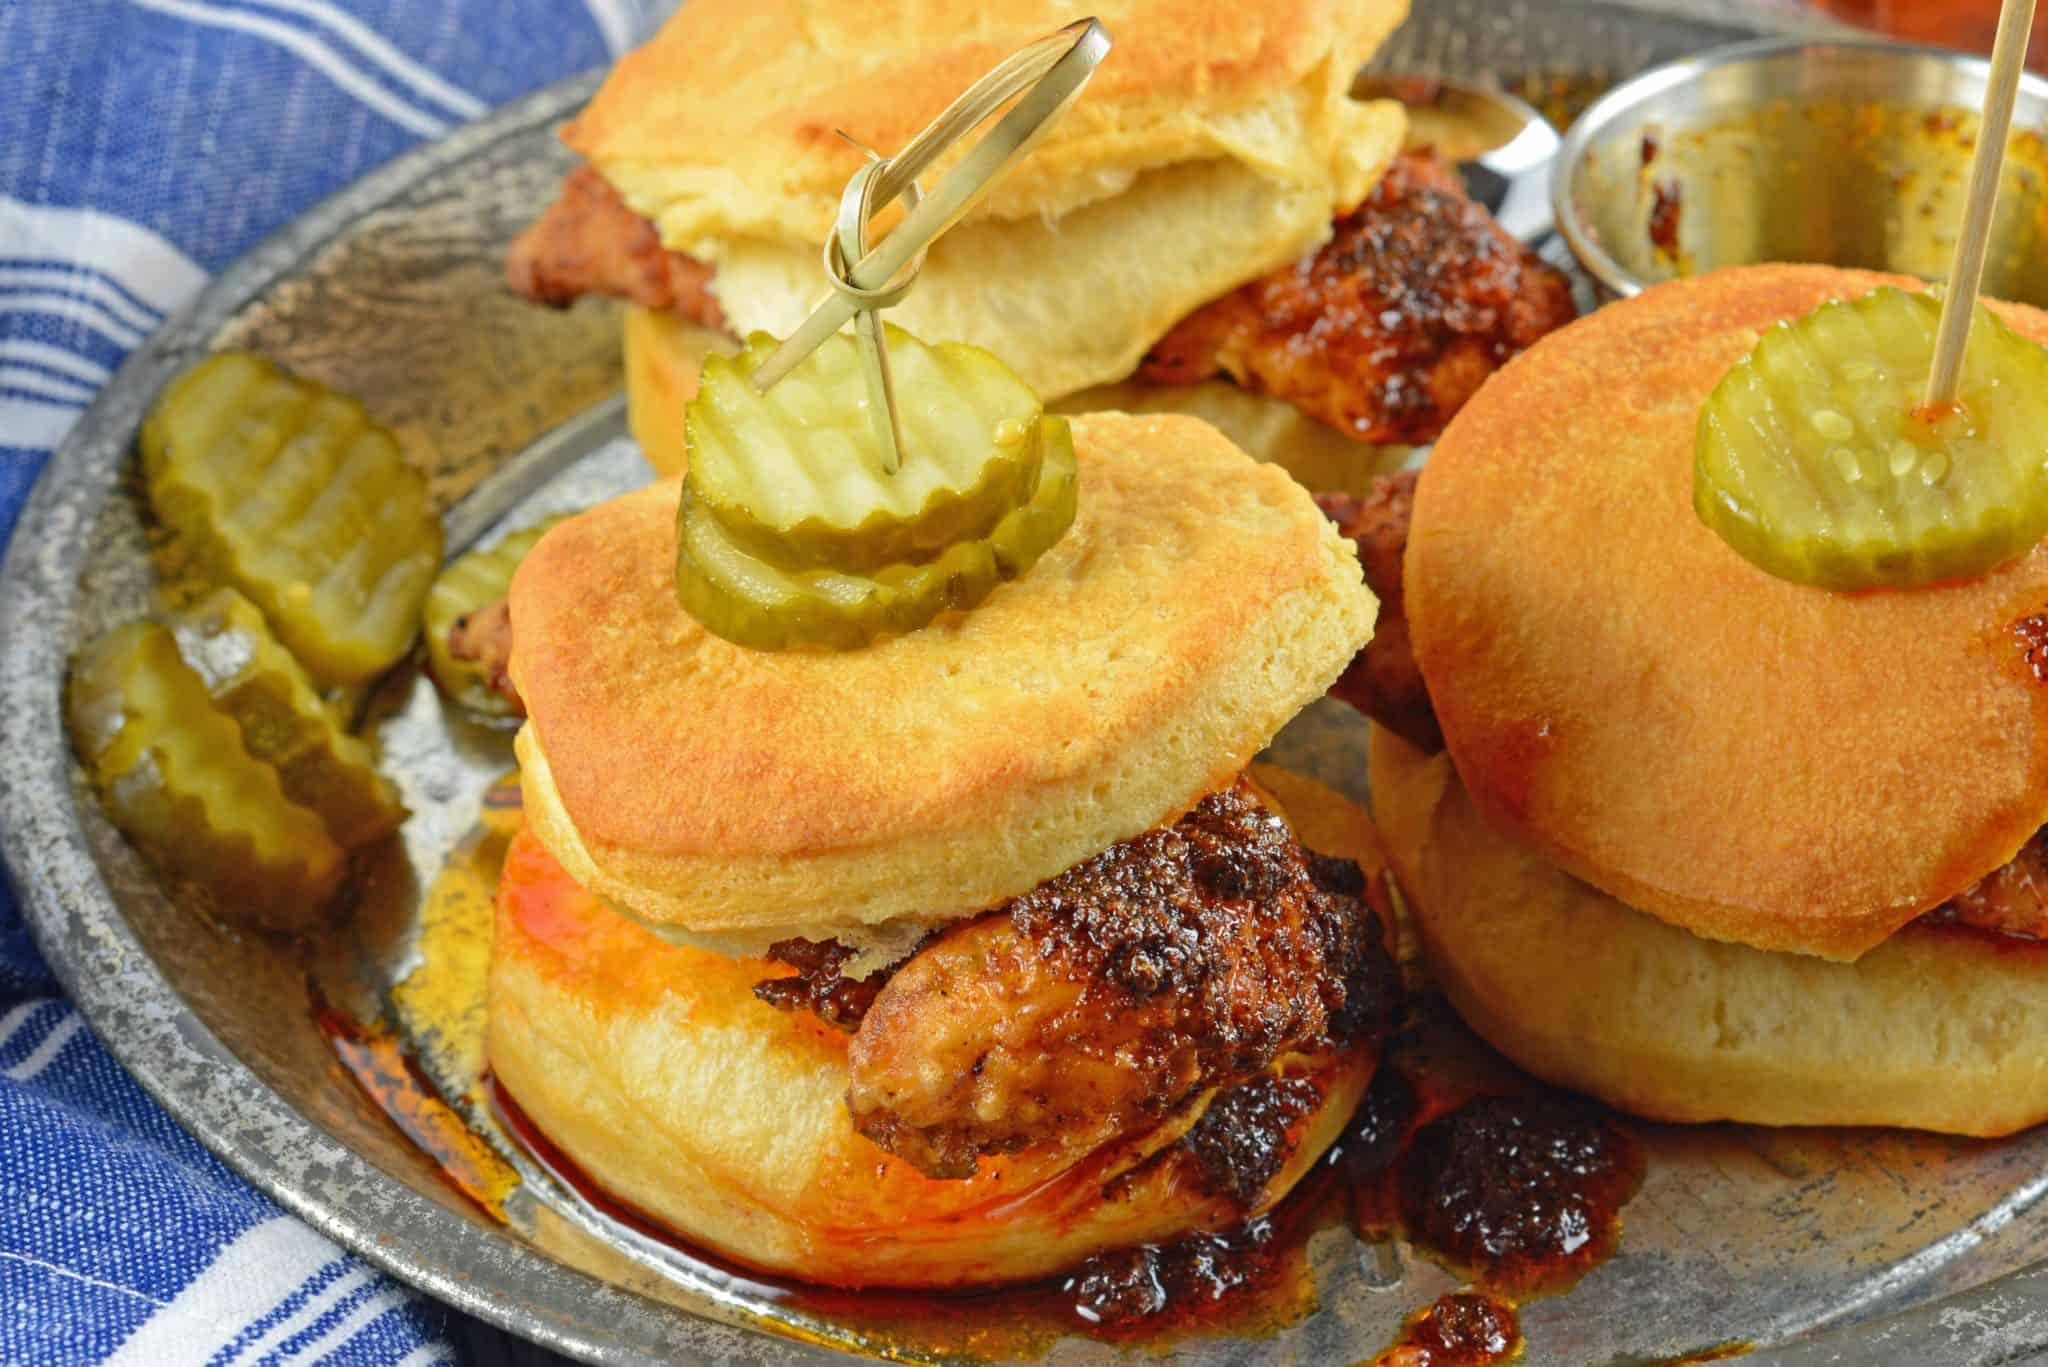 Nashville Hot Chicken Sliders are perfect as a dinner or appetizer. Crispy fried chicken dredged in spicy sauce served on buttermilk biscuits with pickles. #nashvillehotchicken #sliderrecipes www.savoryexperiments.com